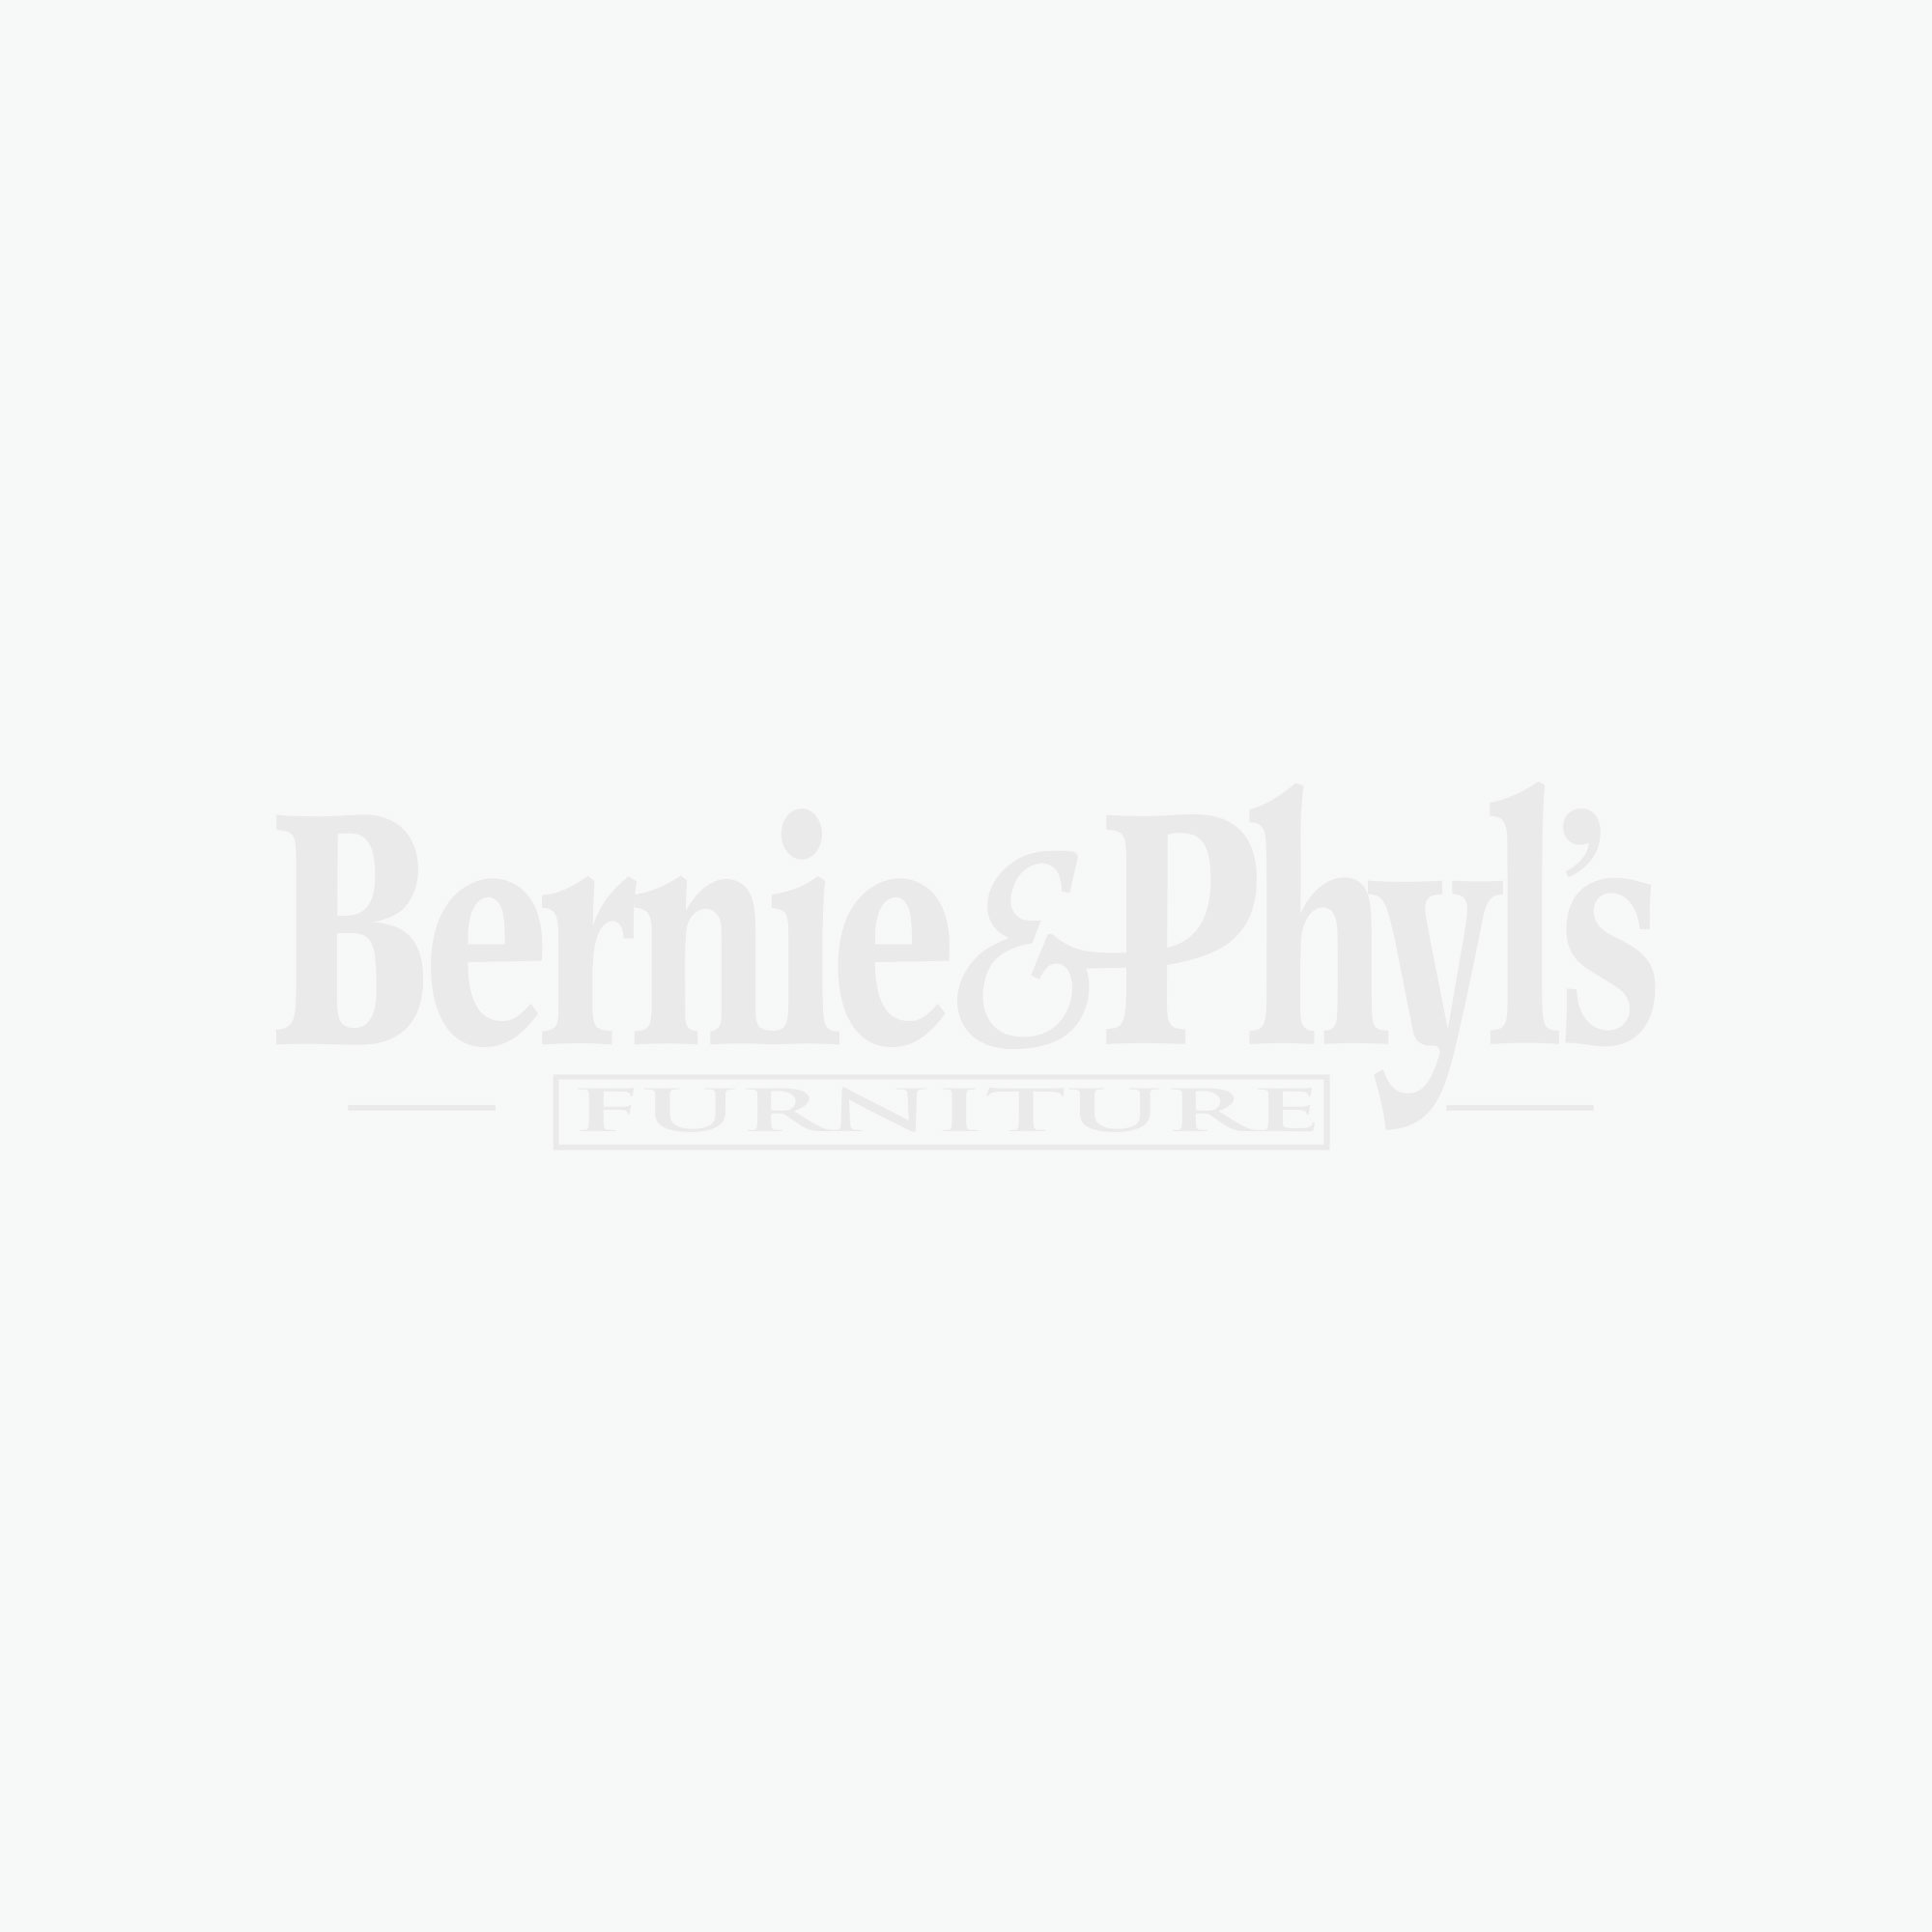 Brooks Sofa Bernie Phyl S Furniture